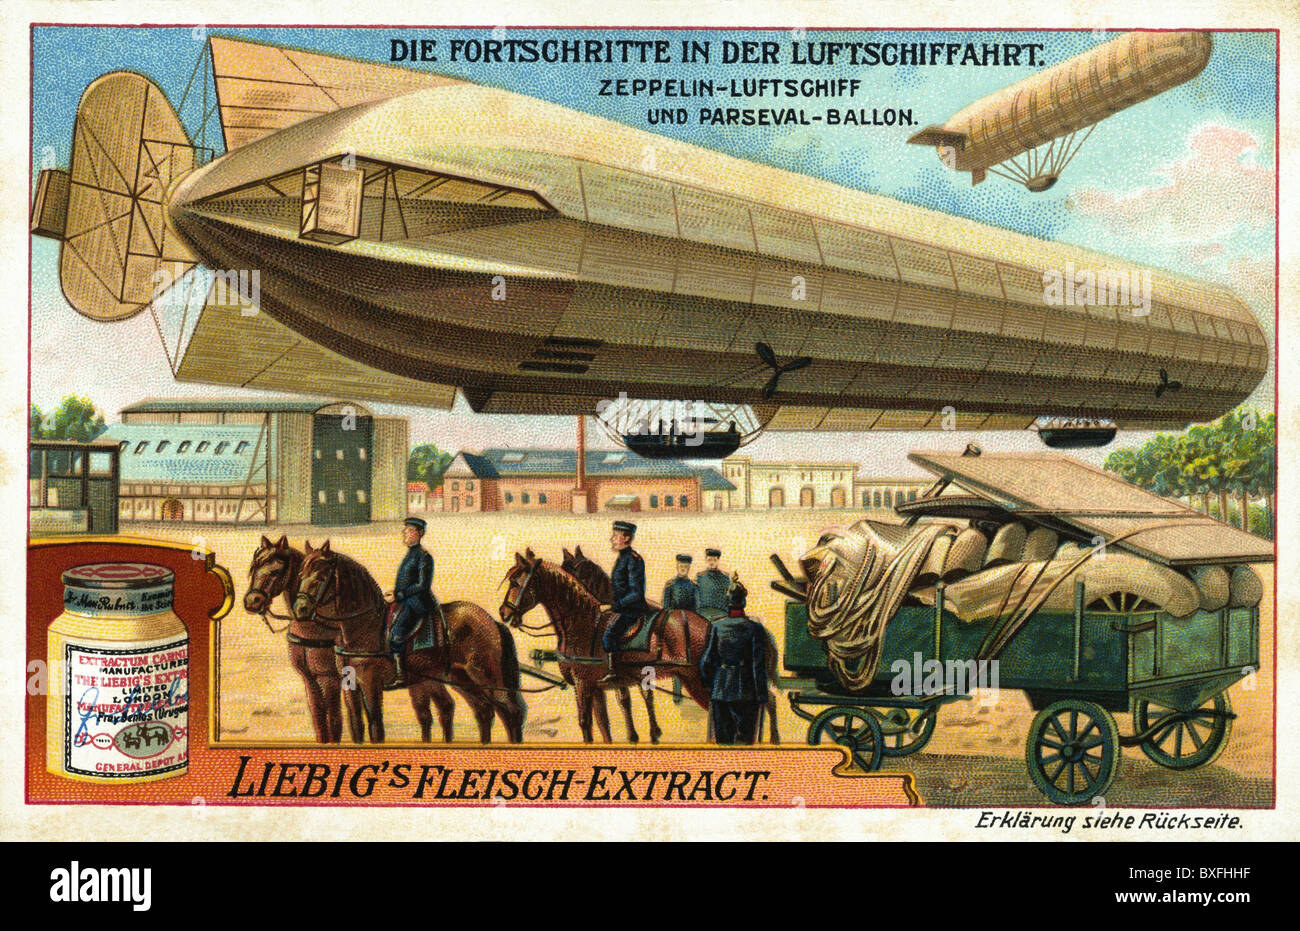 transport / transportation, aviation, airships, one of the first zeppelins by Graf Zeppelin, filled with gas, military - Stock Image